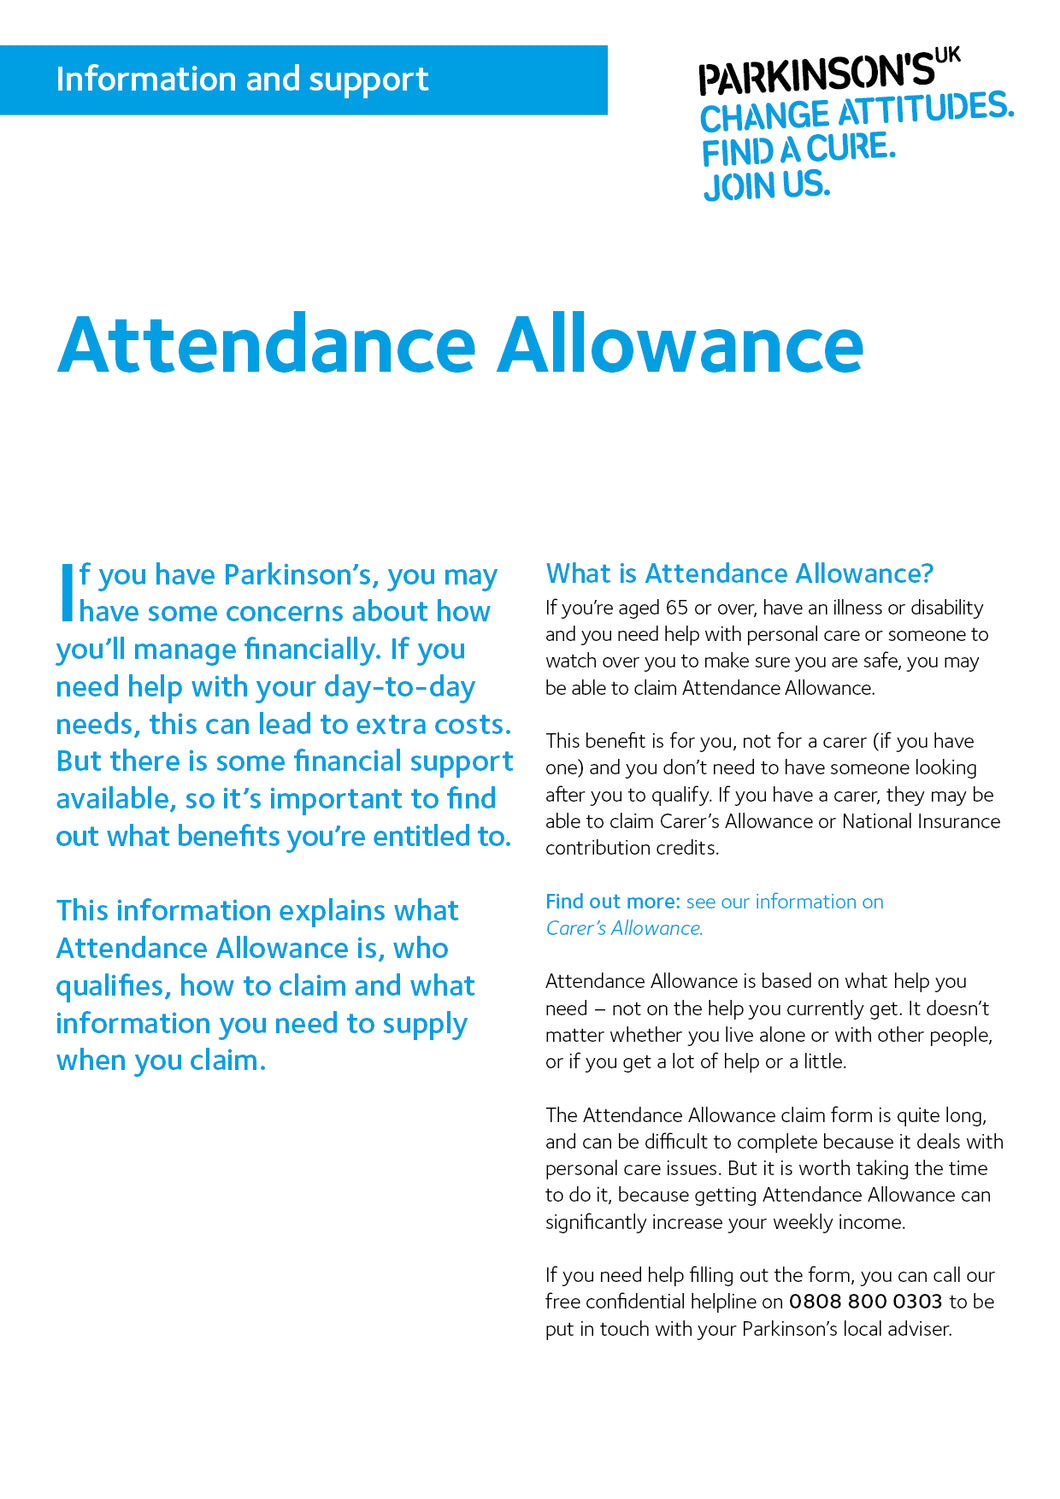 Attendance Allowance - Parkinson's shop